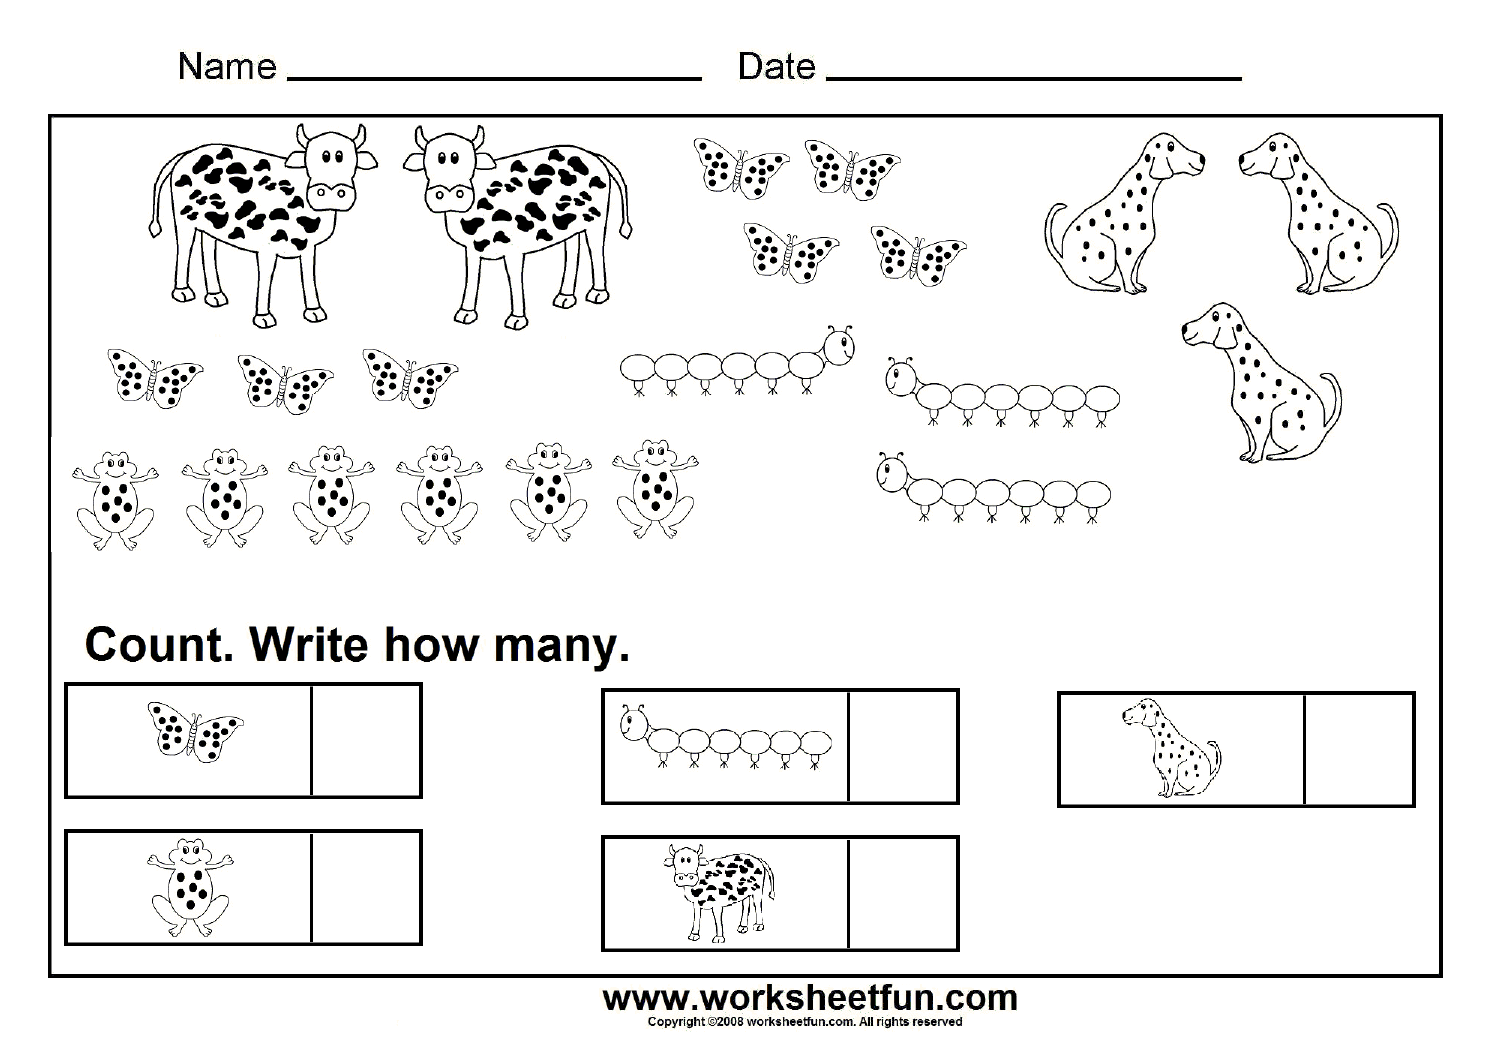 Counting Worksheets 7 Worksheets Free Printable Worksheets Worksheetfun